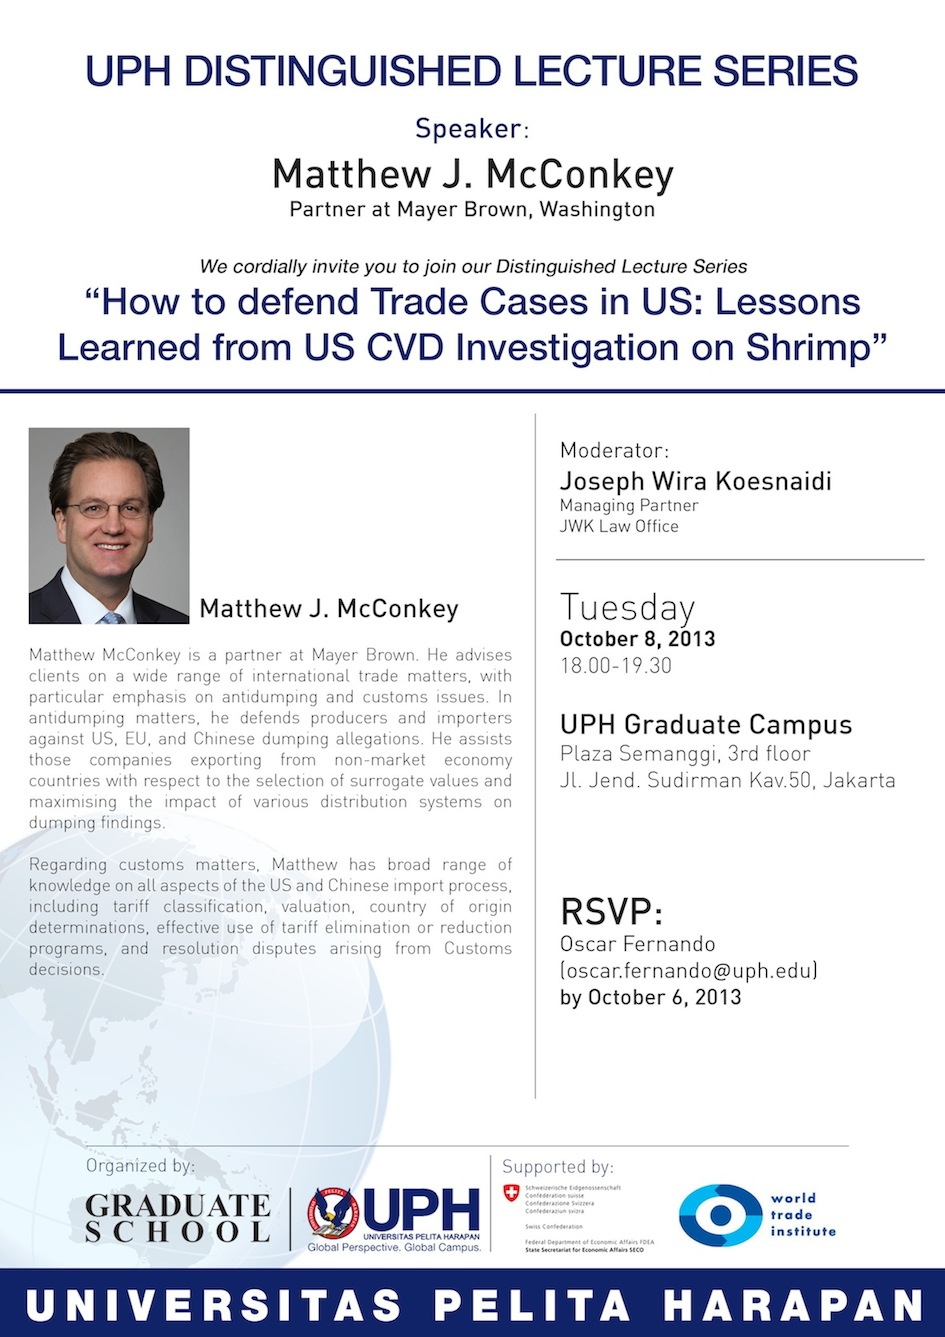 How To Defend Trade Cases in US: Lesson Learned From US CVD Investigation on Shrimp